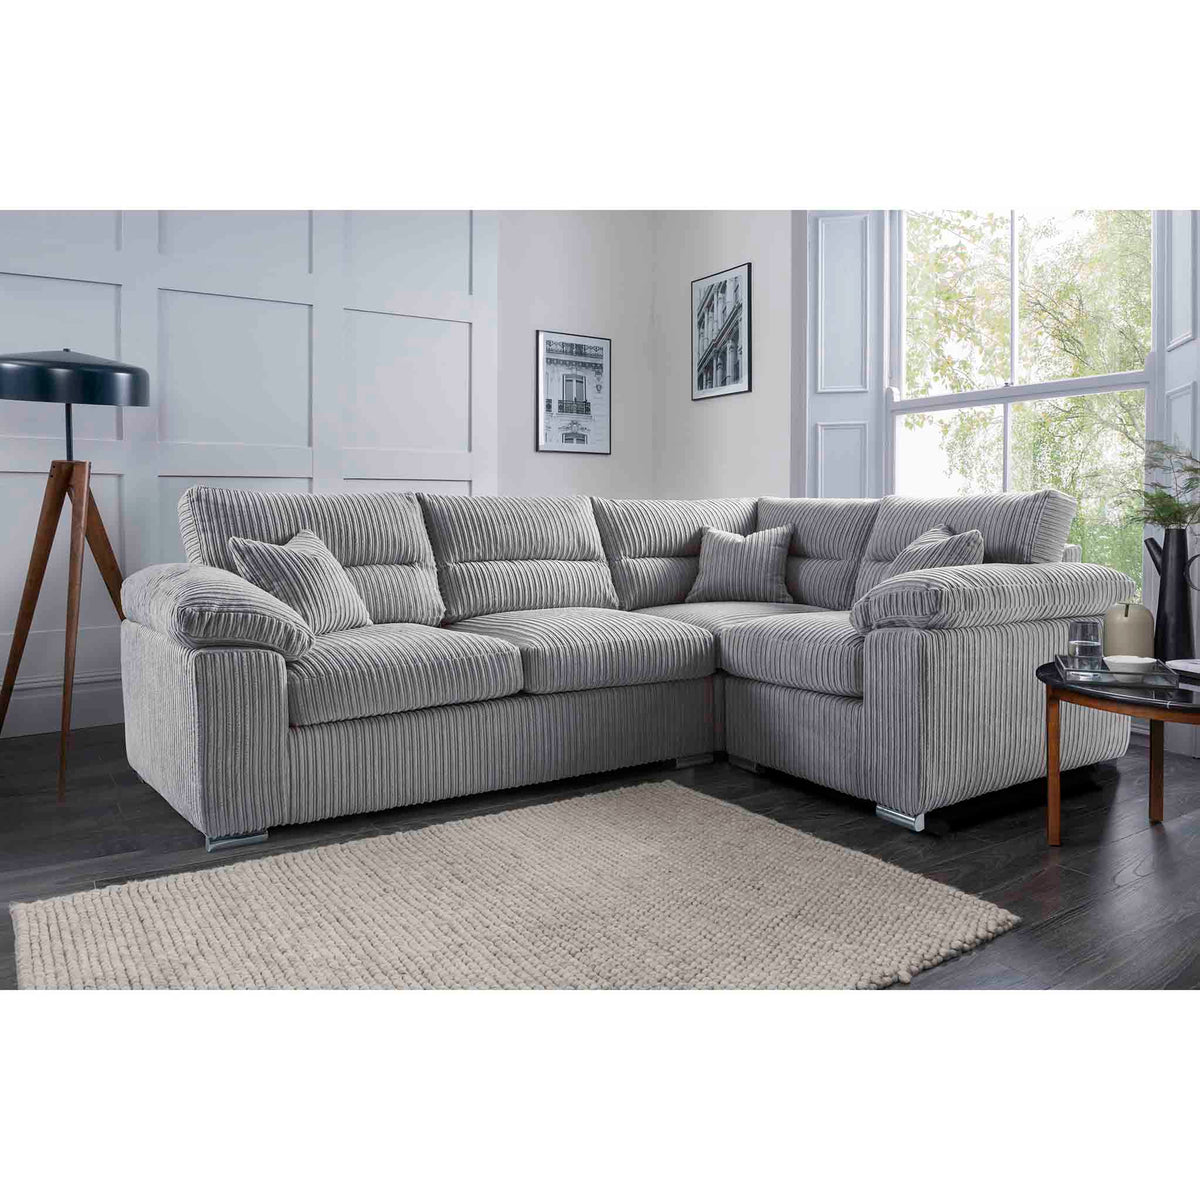 Amalfi Silver Left Hand Corner Fabric Sofa from Roseland Furniture